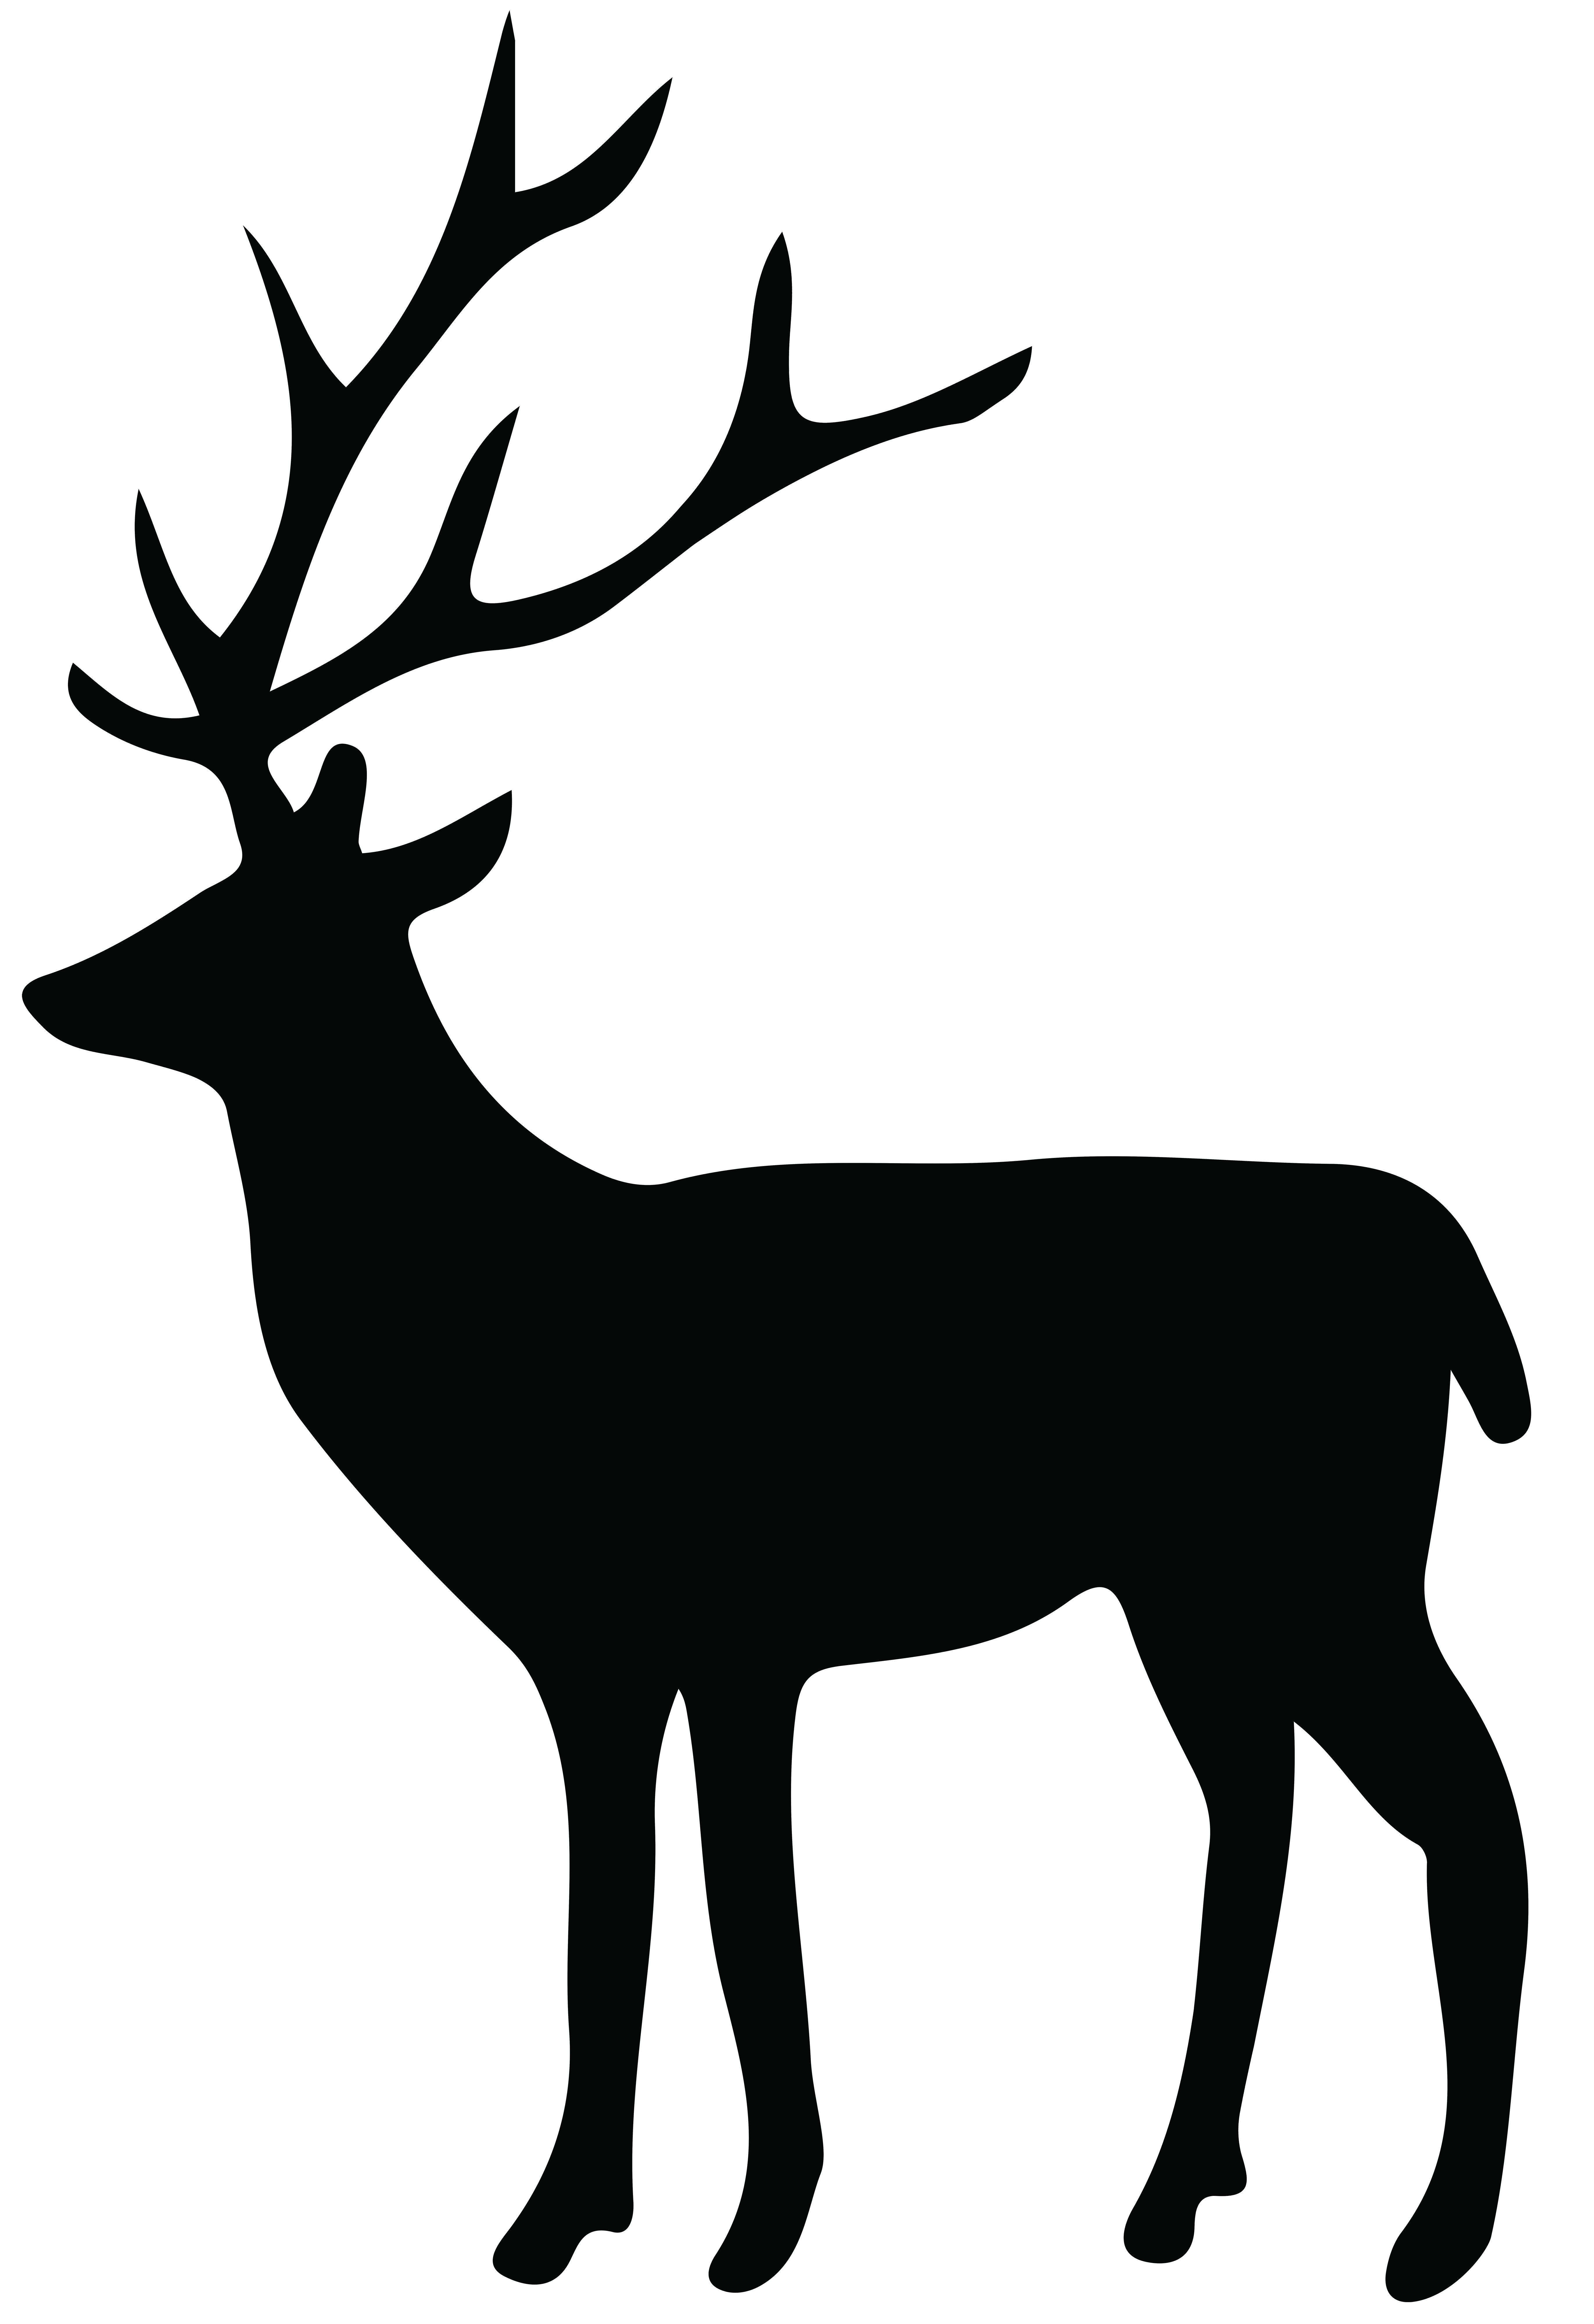 deer antlers with bow silhouette png